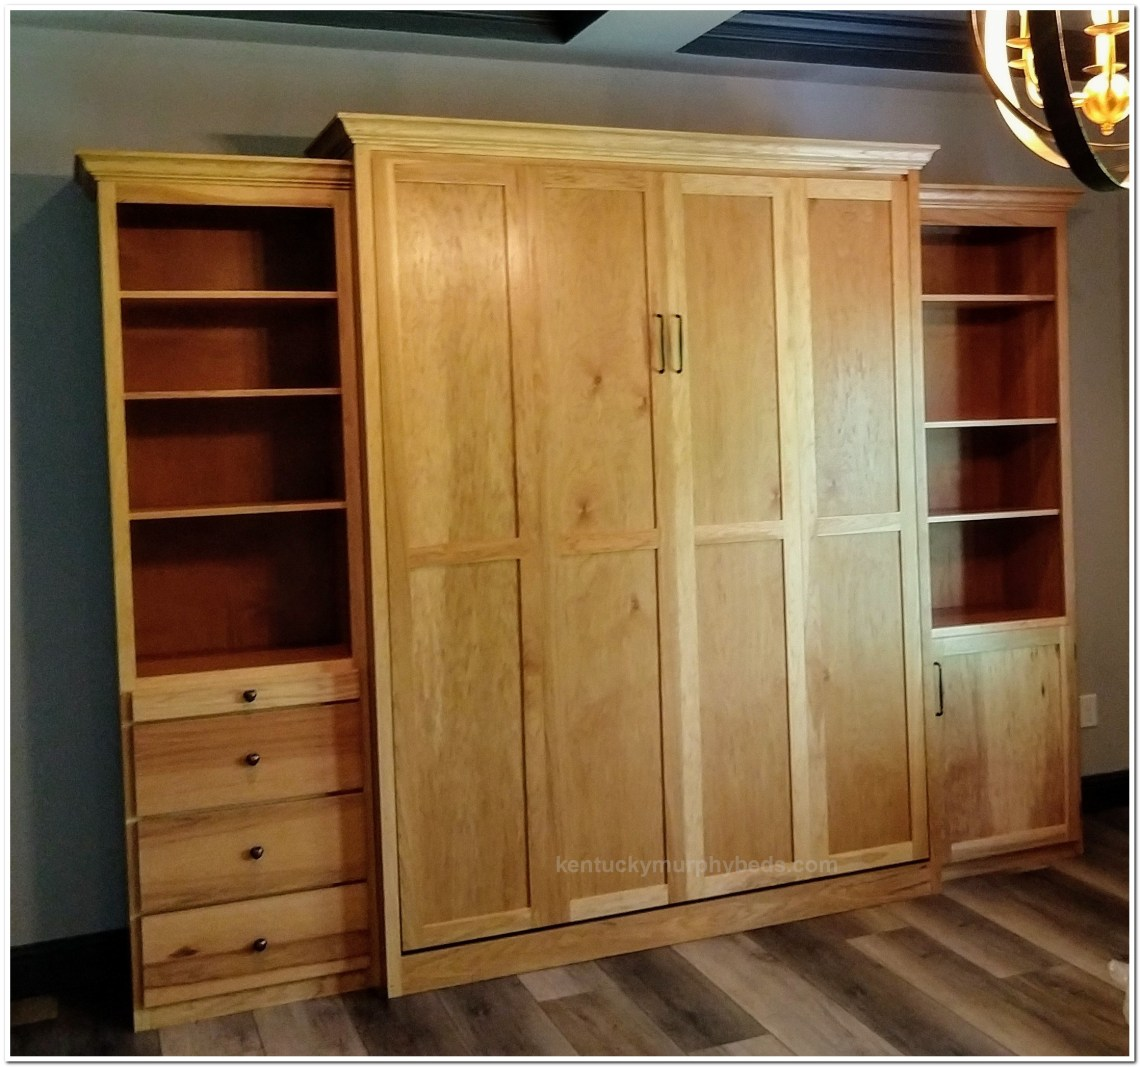 queen murphy bed of hickory.Two bookcases with adjustable shelves.